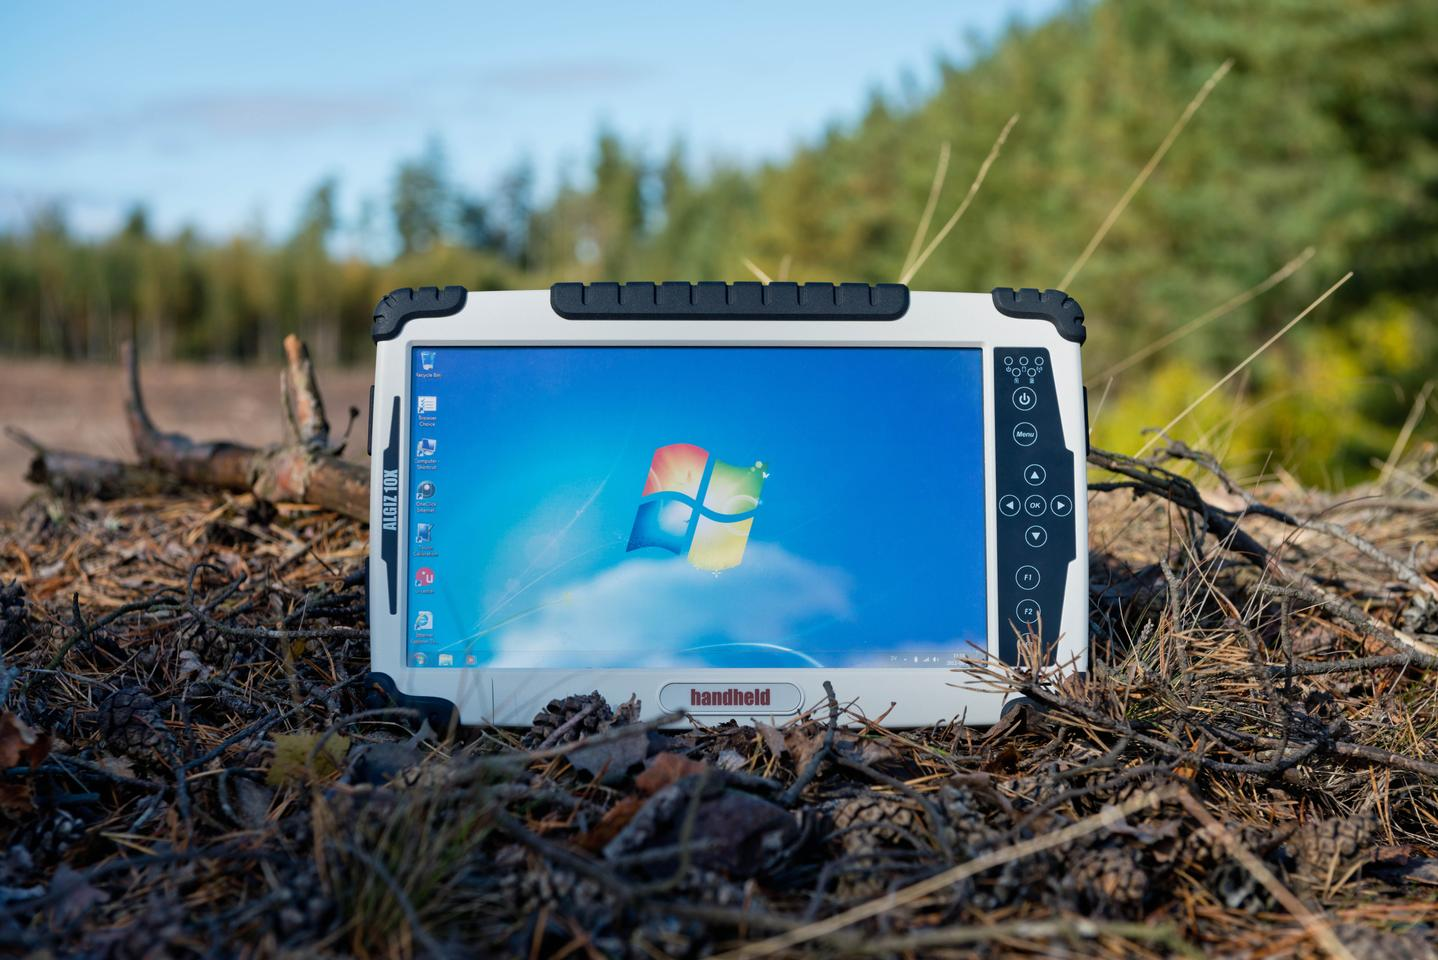 Sweden's Handheld Group has launched a rugged 10.1-inch tablet for field professionals called the Algiz 10X